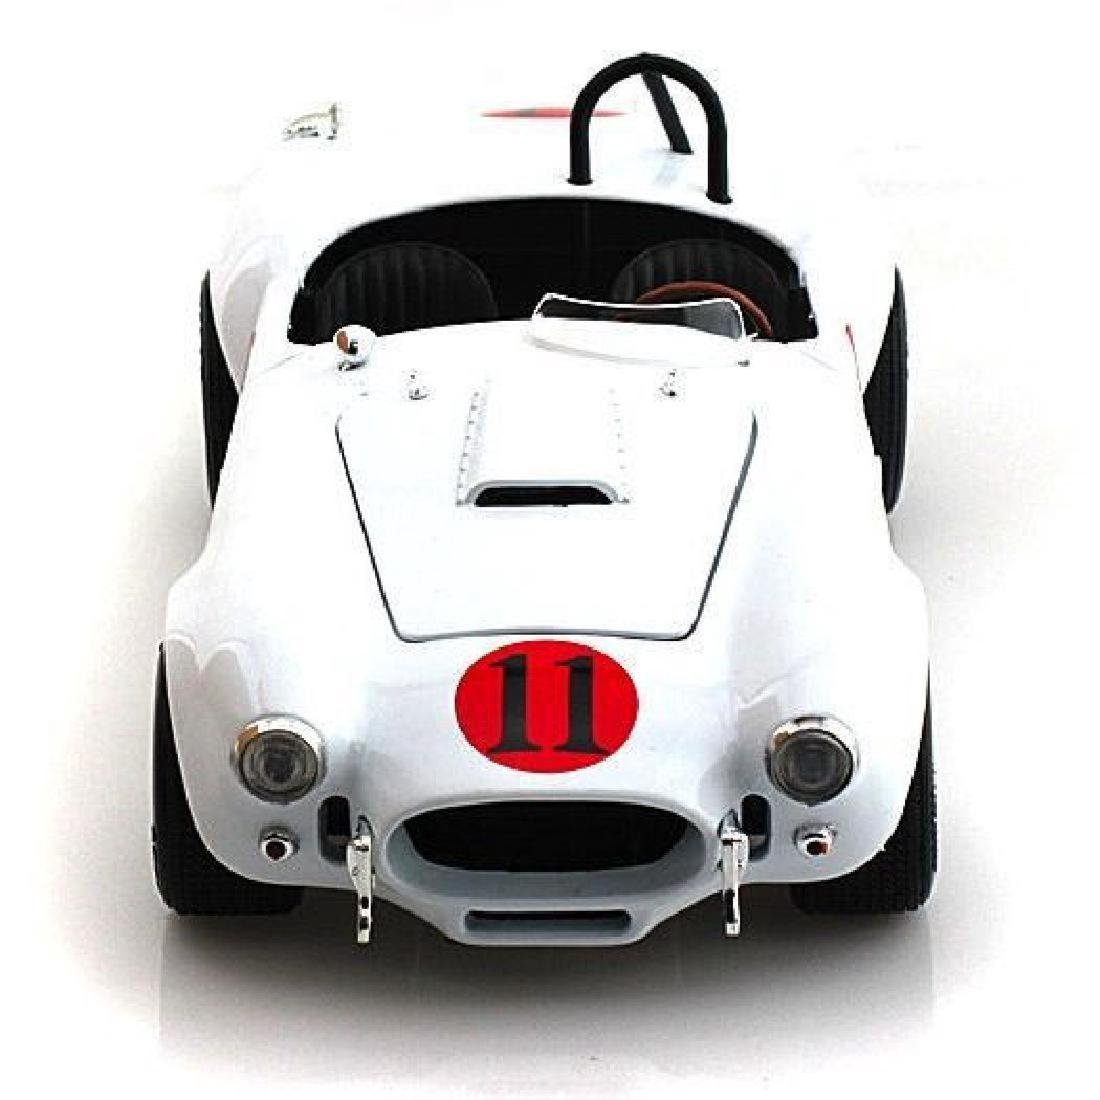 Auto World Scale 1:18 Shelby Cobra 427 S/C 1965 Spinout